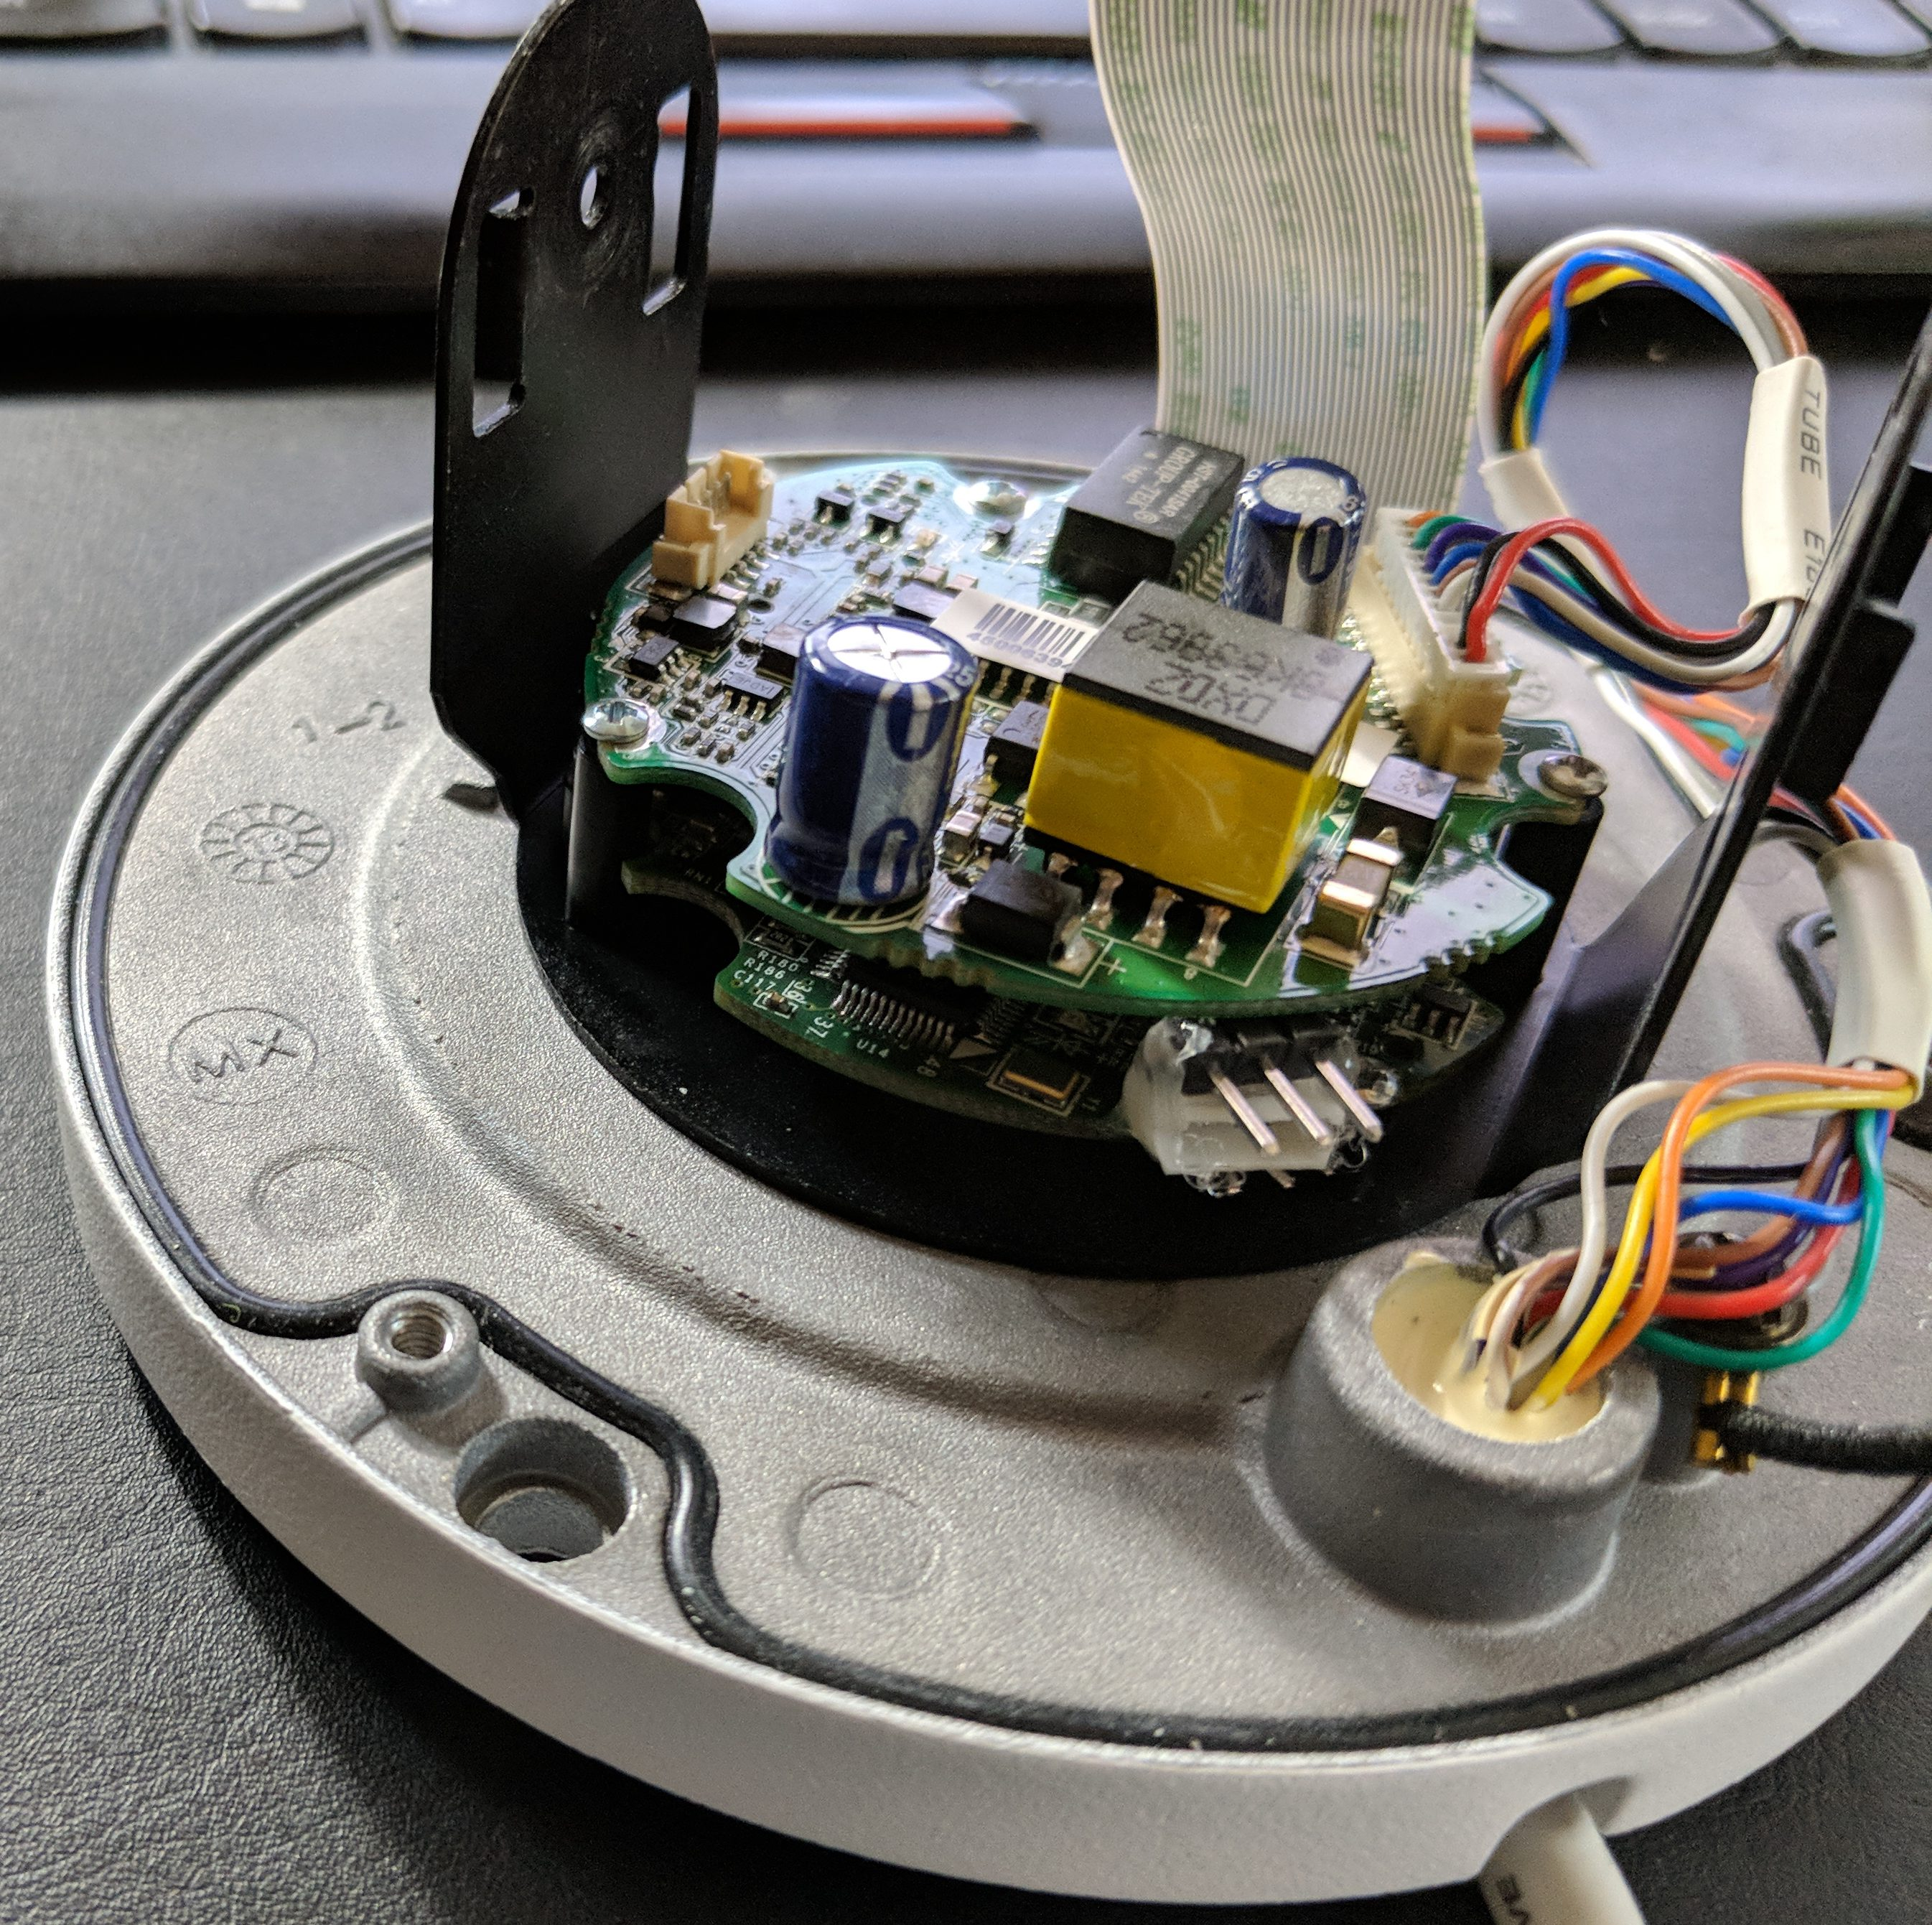 Hacking the hikvision: part 2